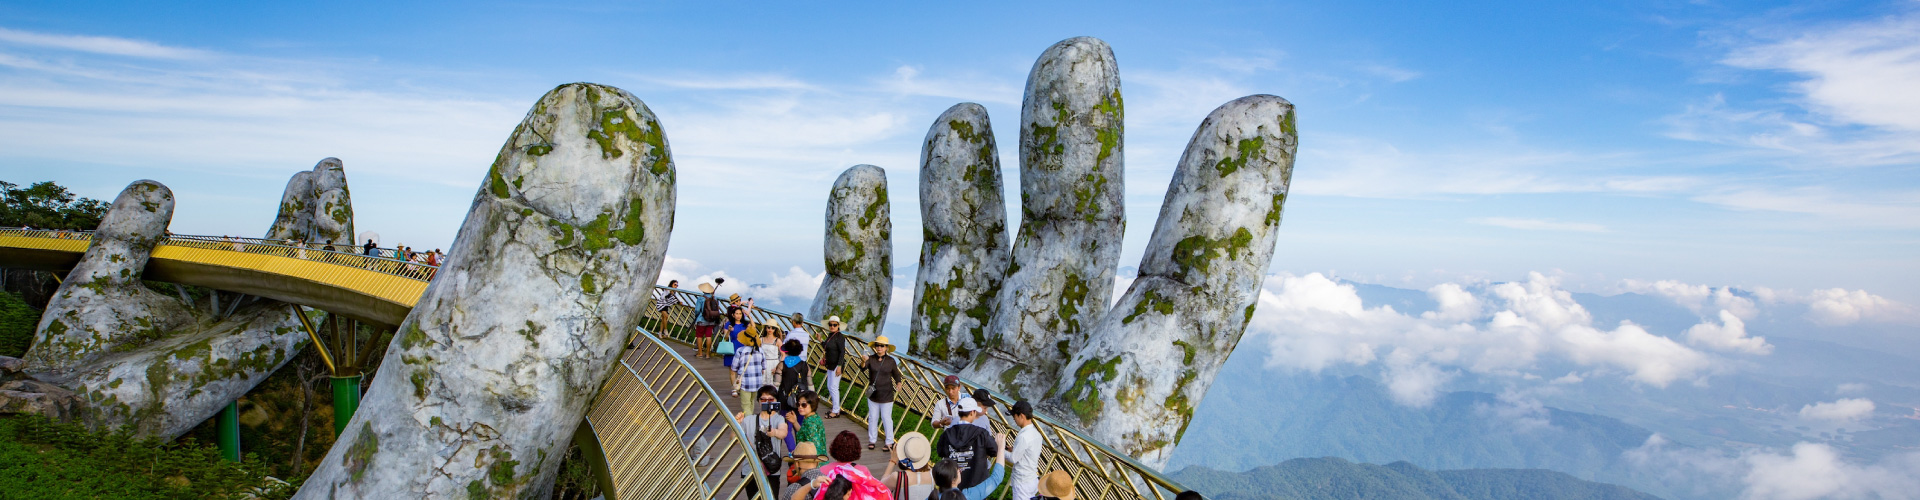 2020 Vietnam Top 5 Best Seller from RM 828 per person